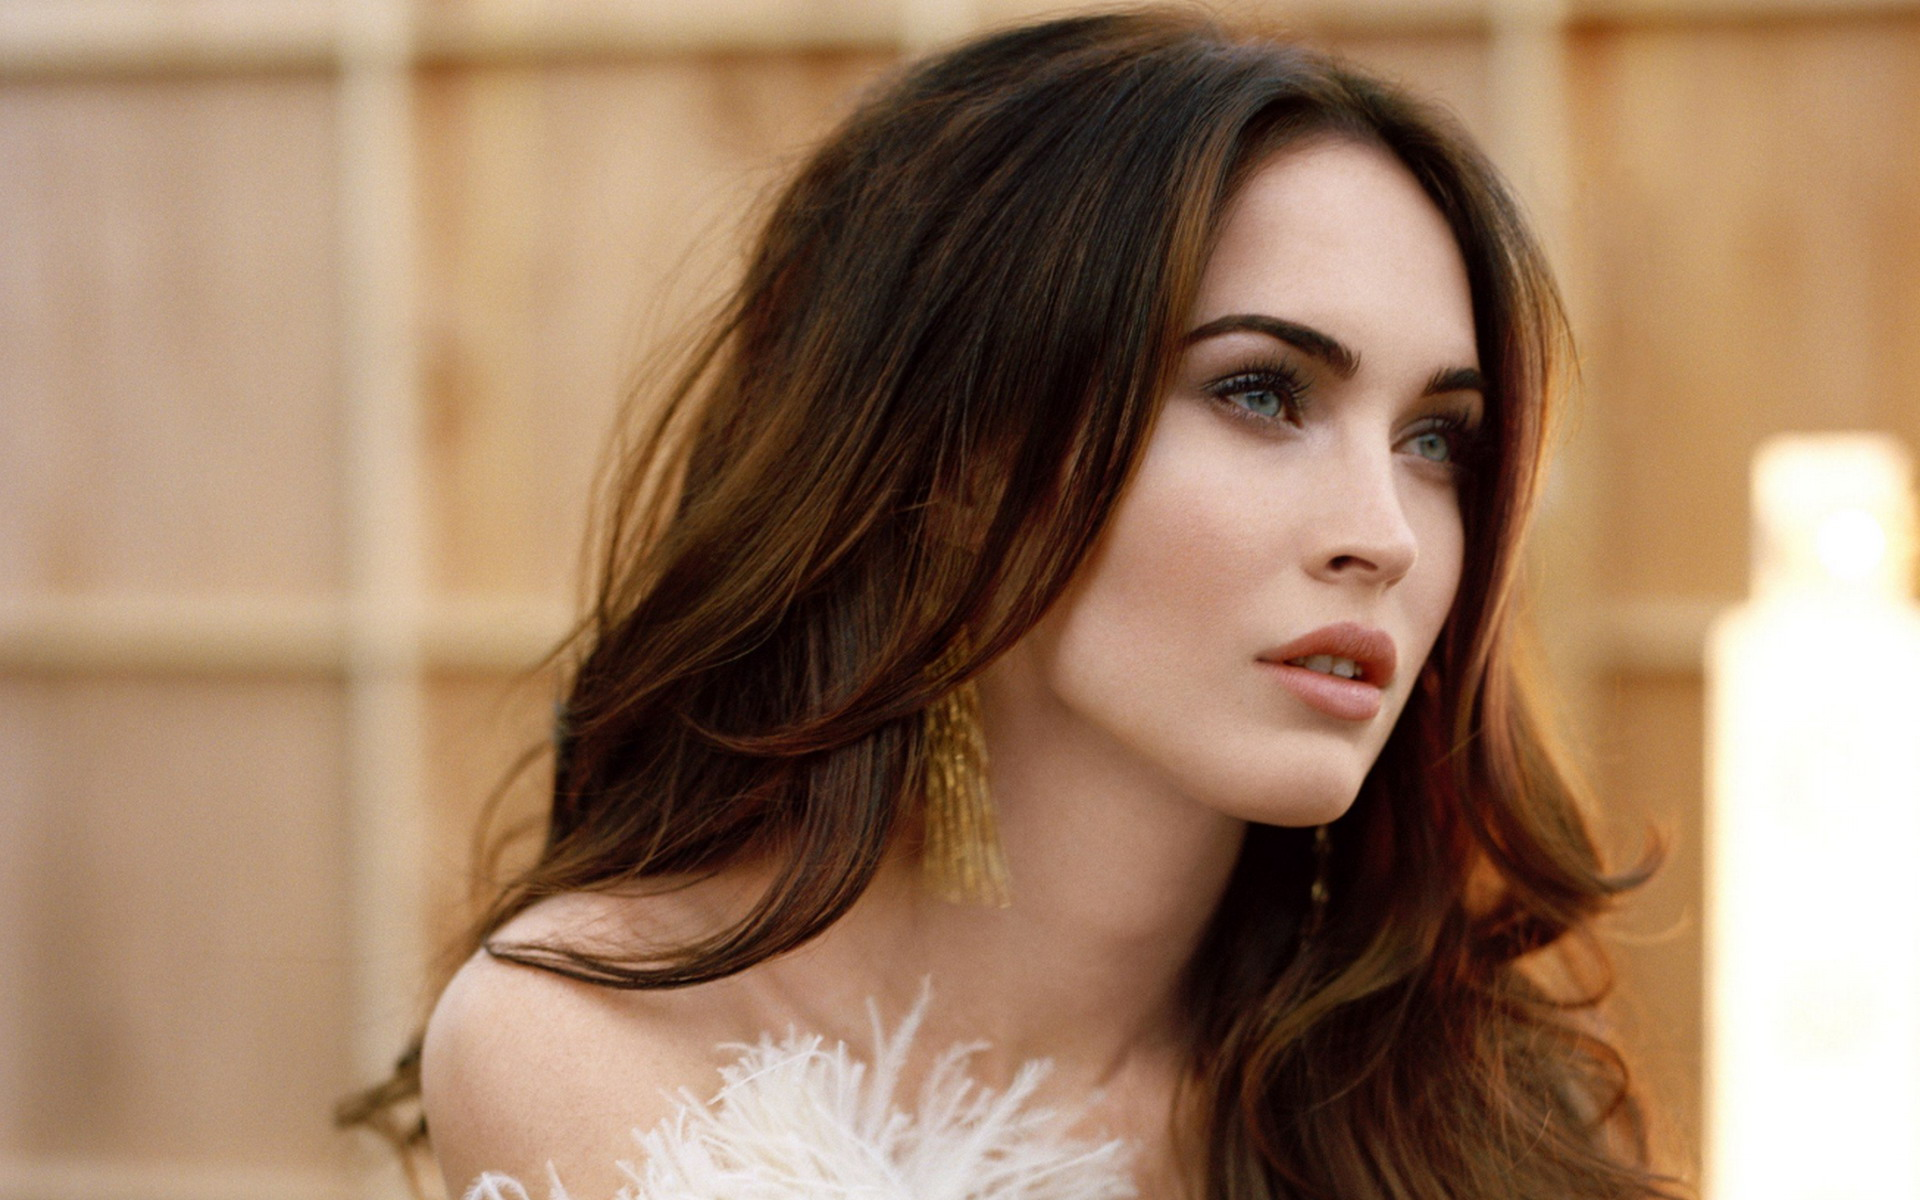 Megan-Fox-http-www-firsthd-com-megan-fox-html-wallpaper-wp6004847